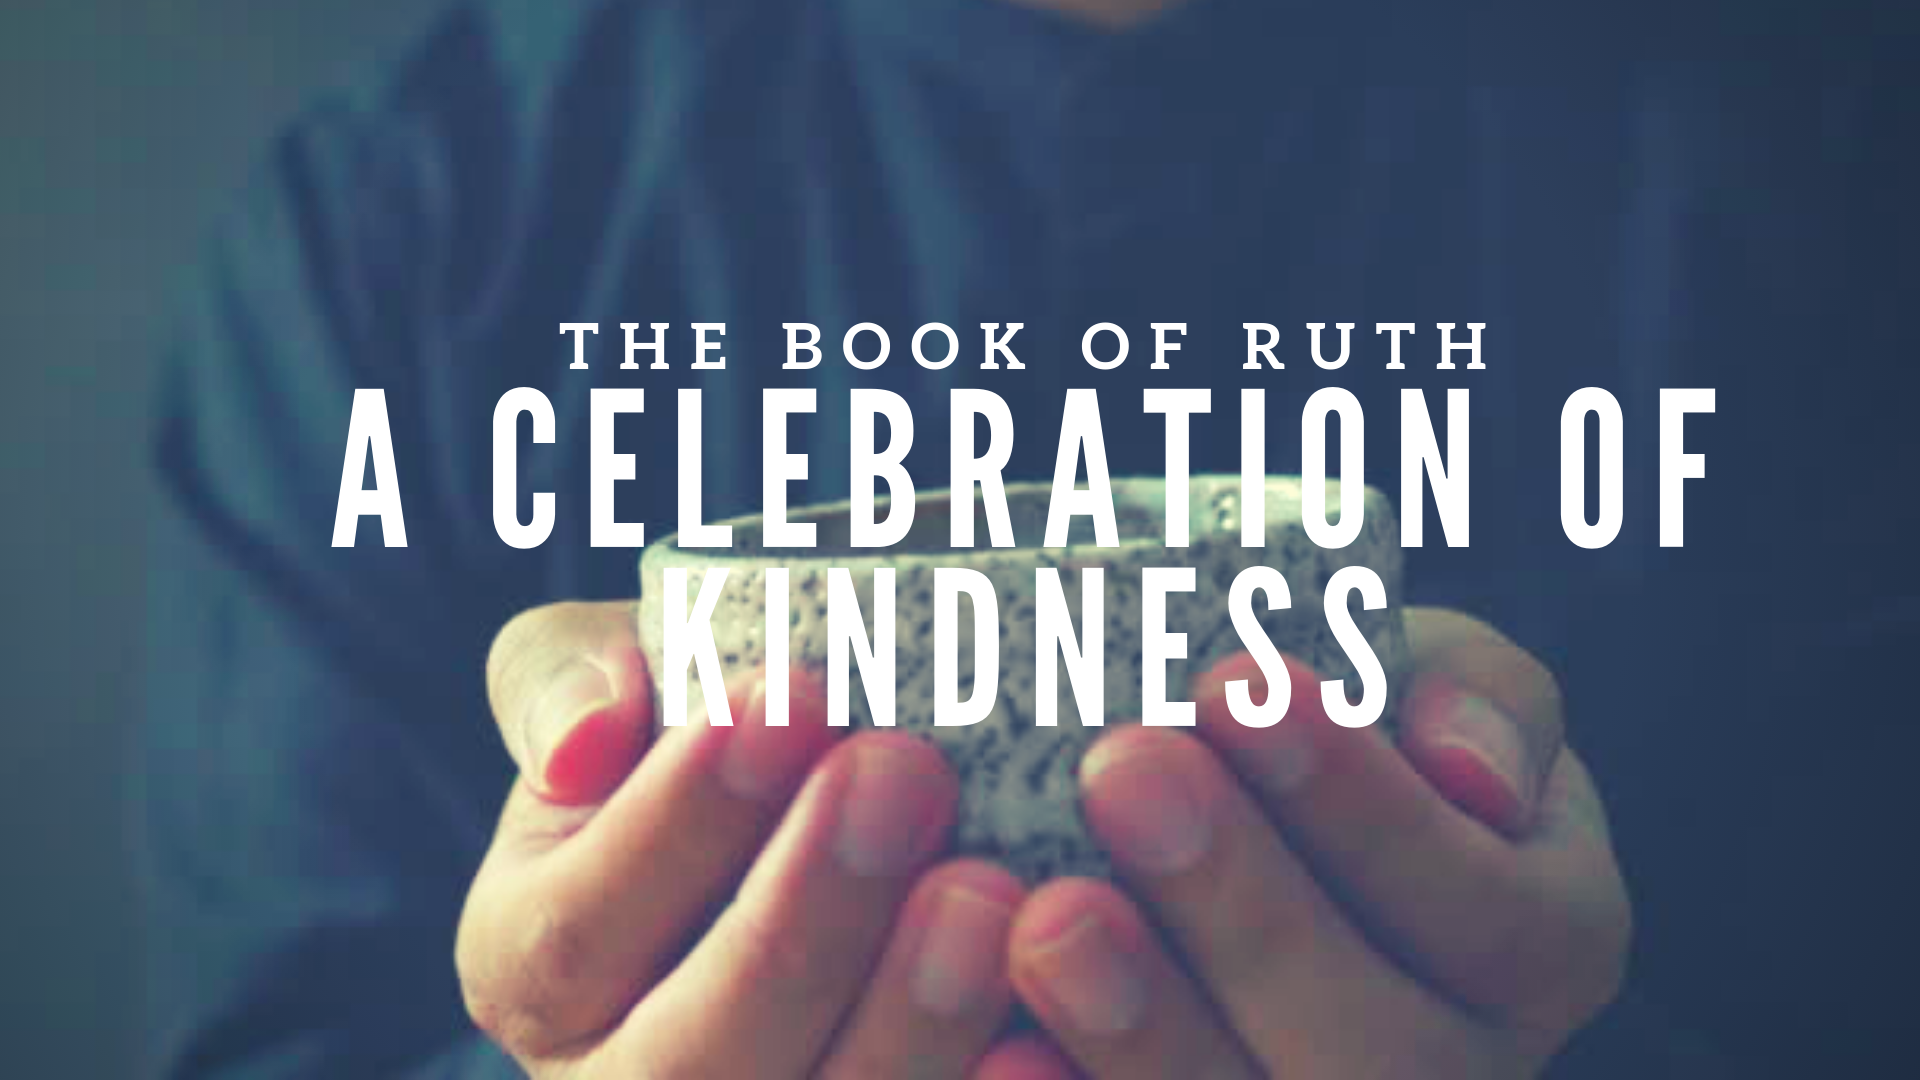 Ruth: A Celebration of Kindness